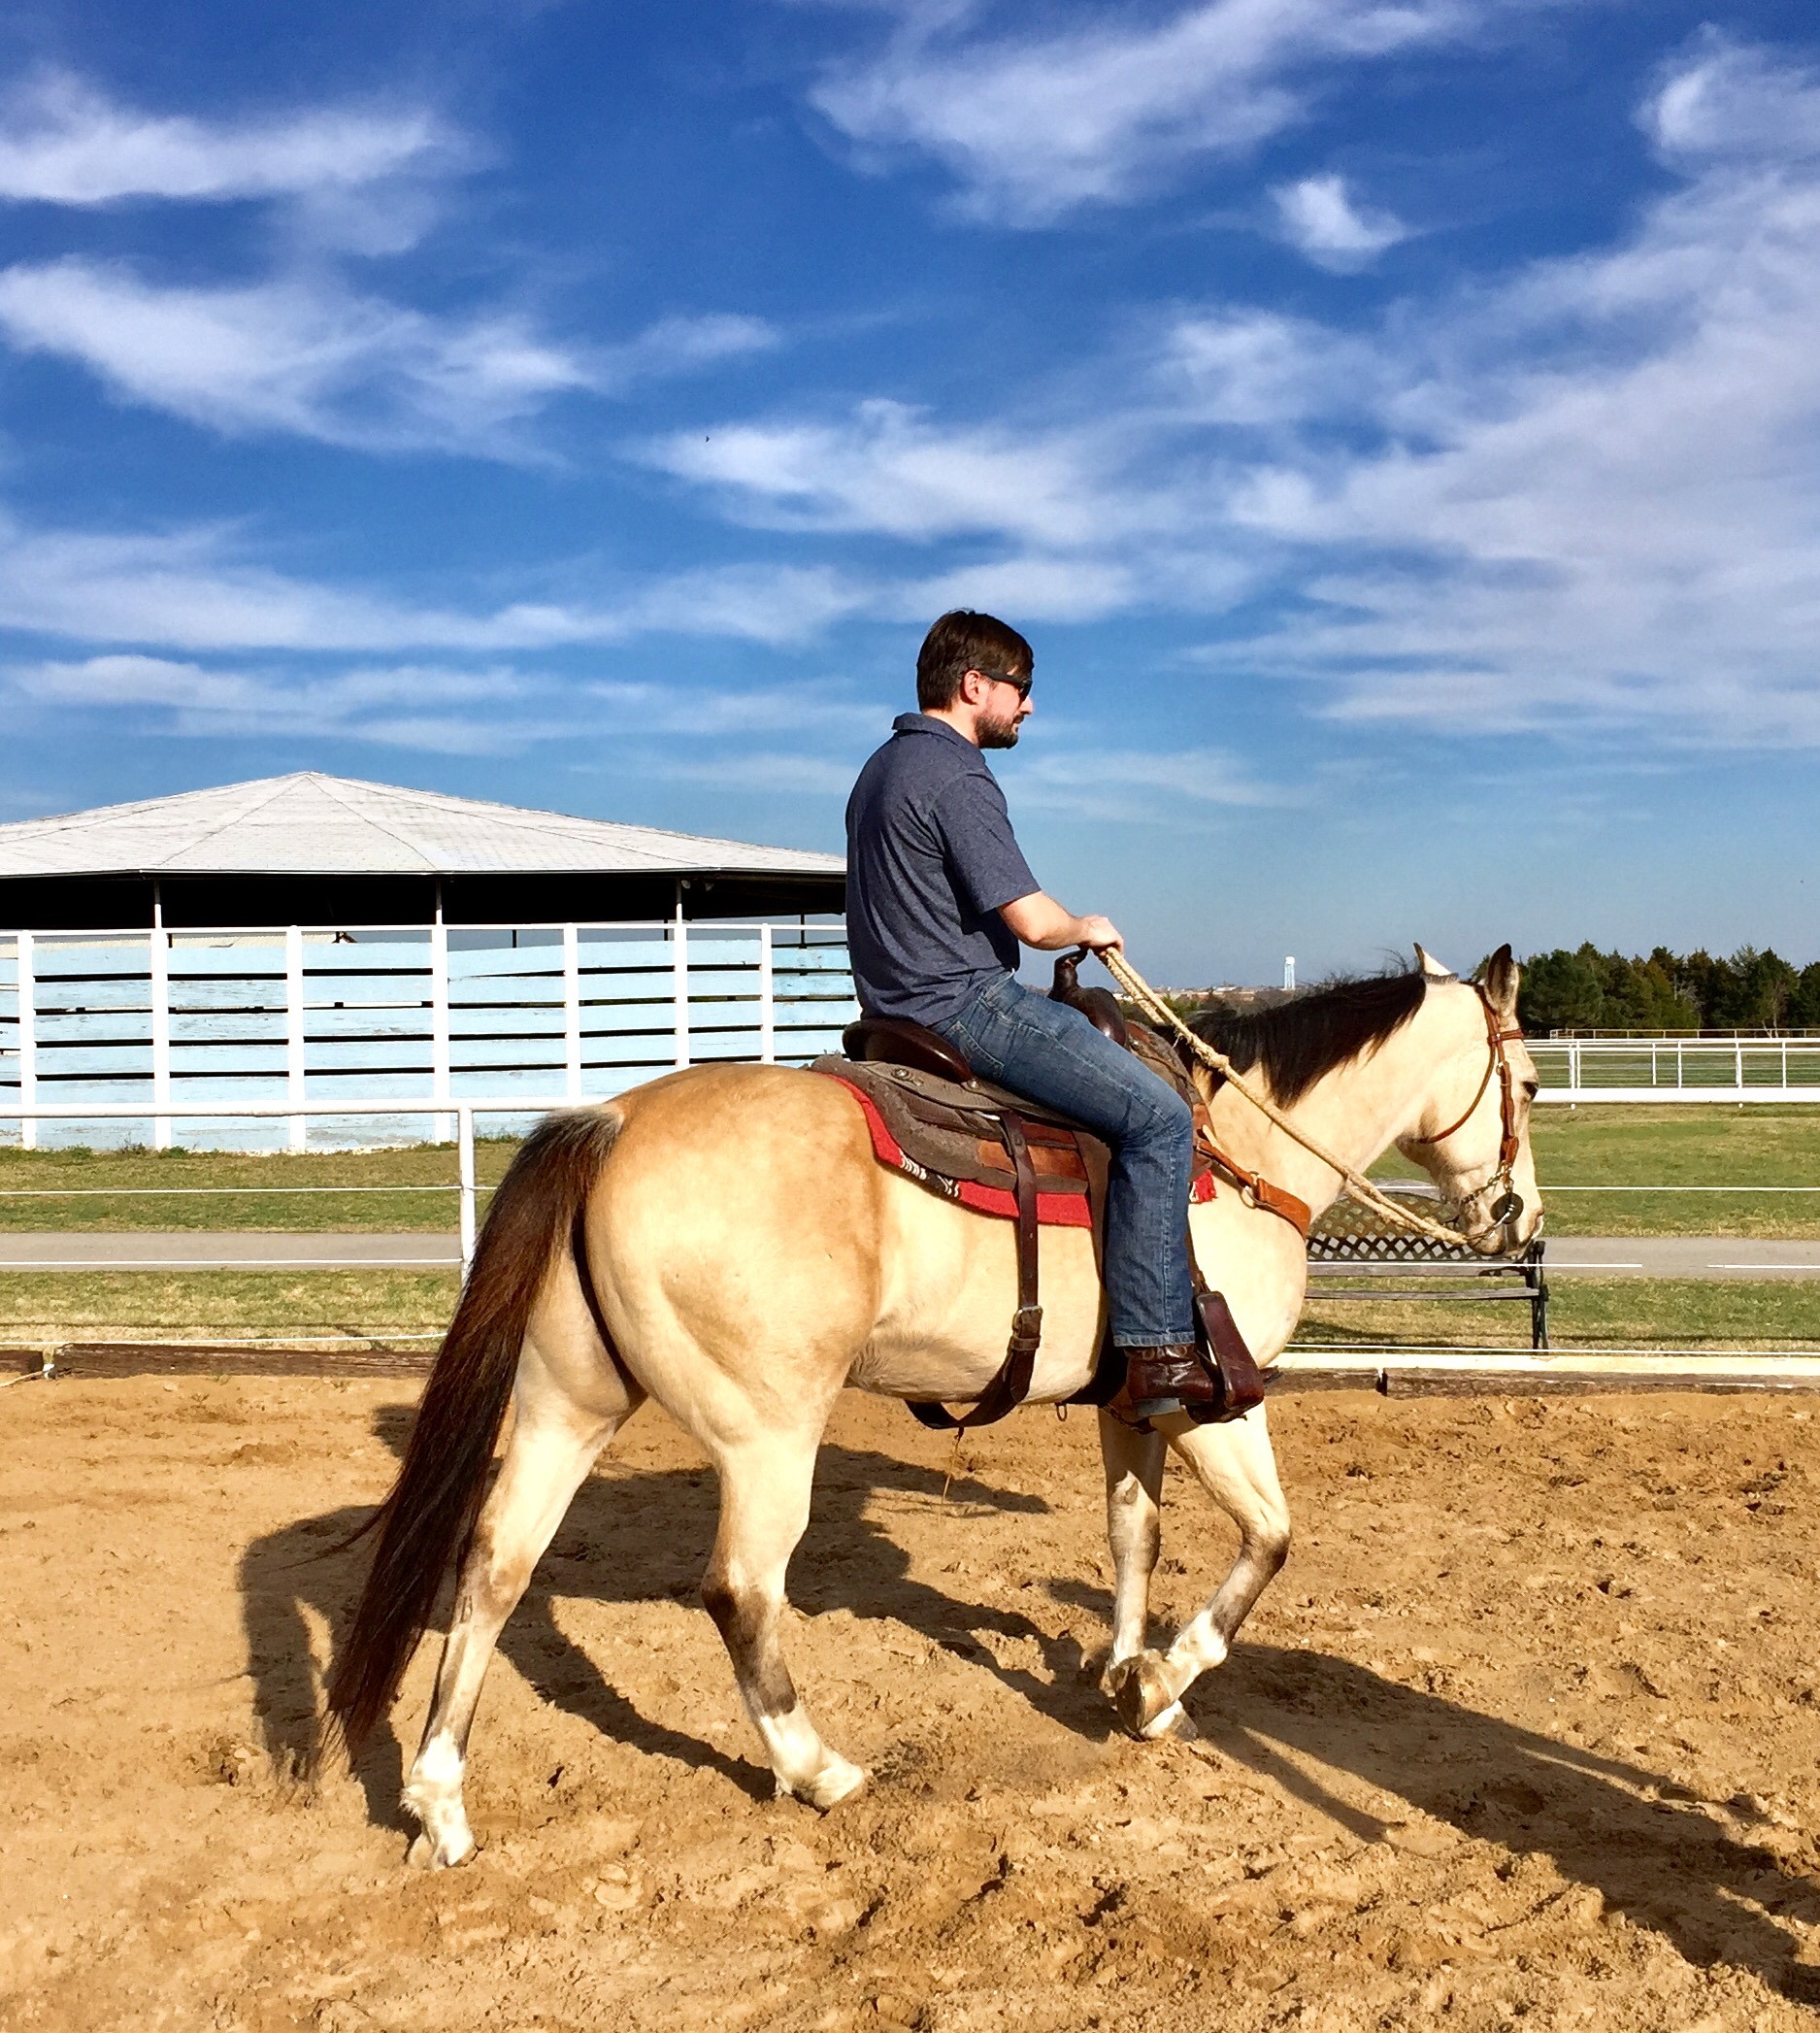 M-Bar-K Farms | Riding lesson